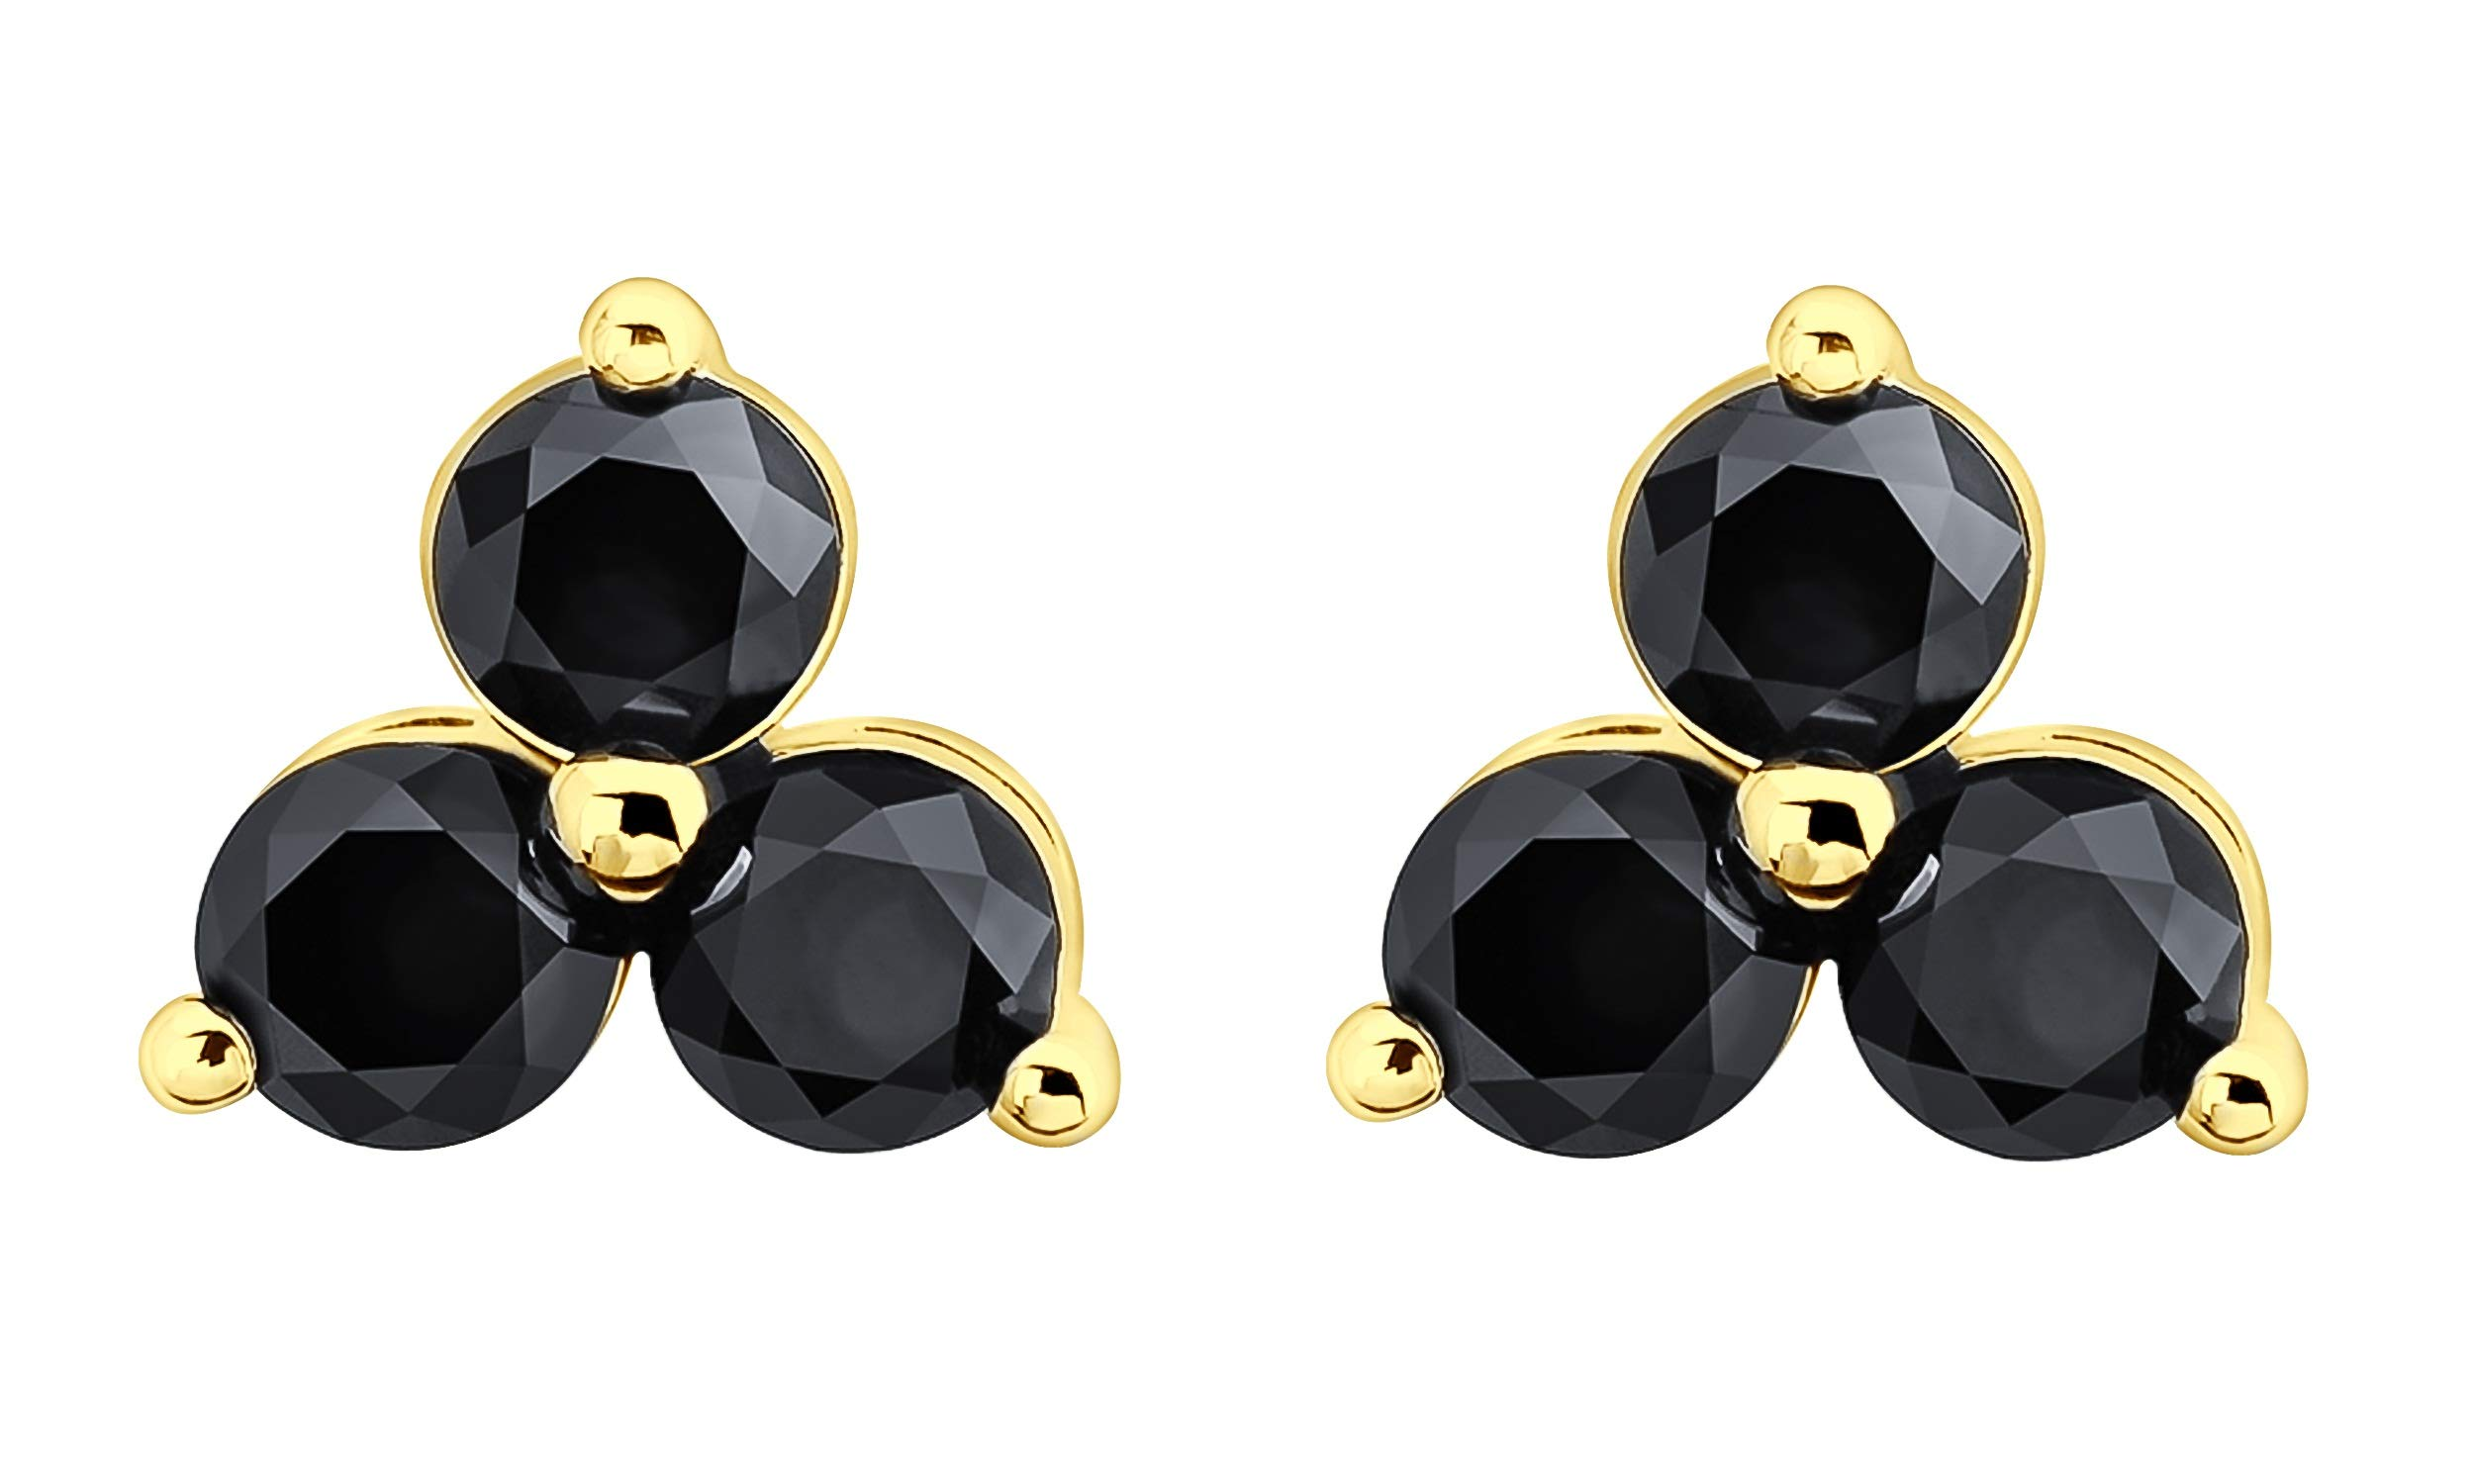 Prism Jewel 0.33Ct Round Black Diamond 3 Stone Trilogy Screw Back Earrings, 14k Yellow Gold